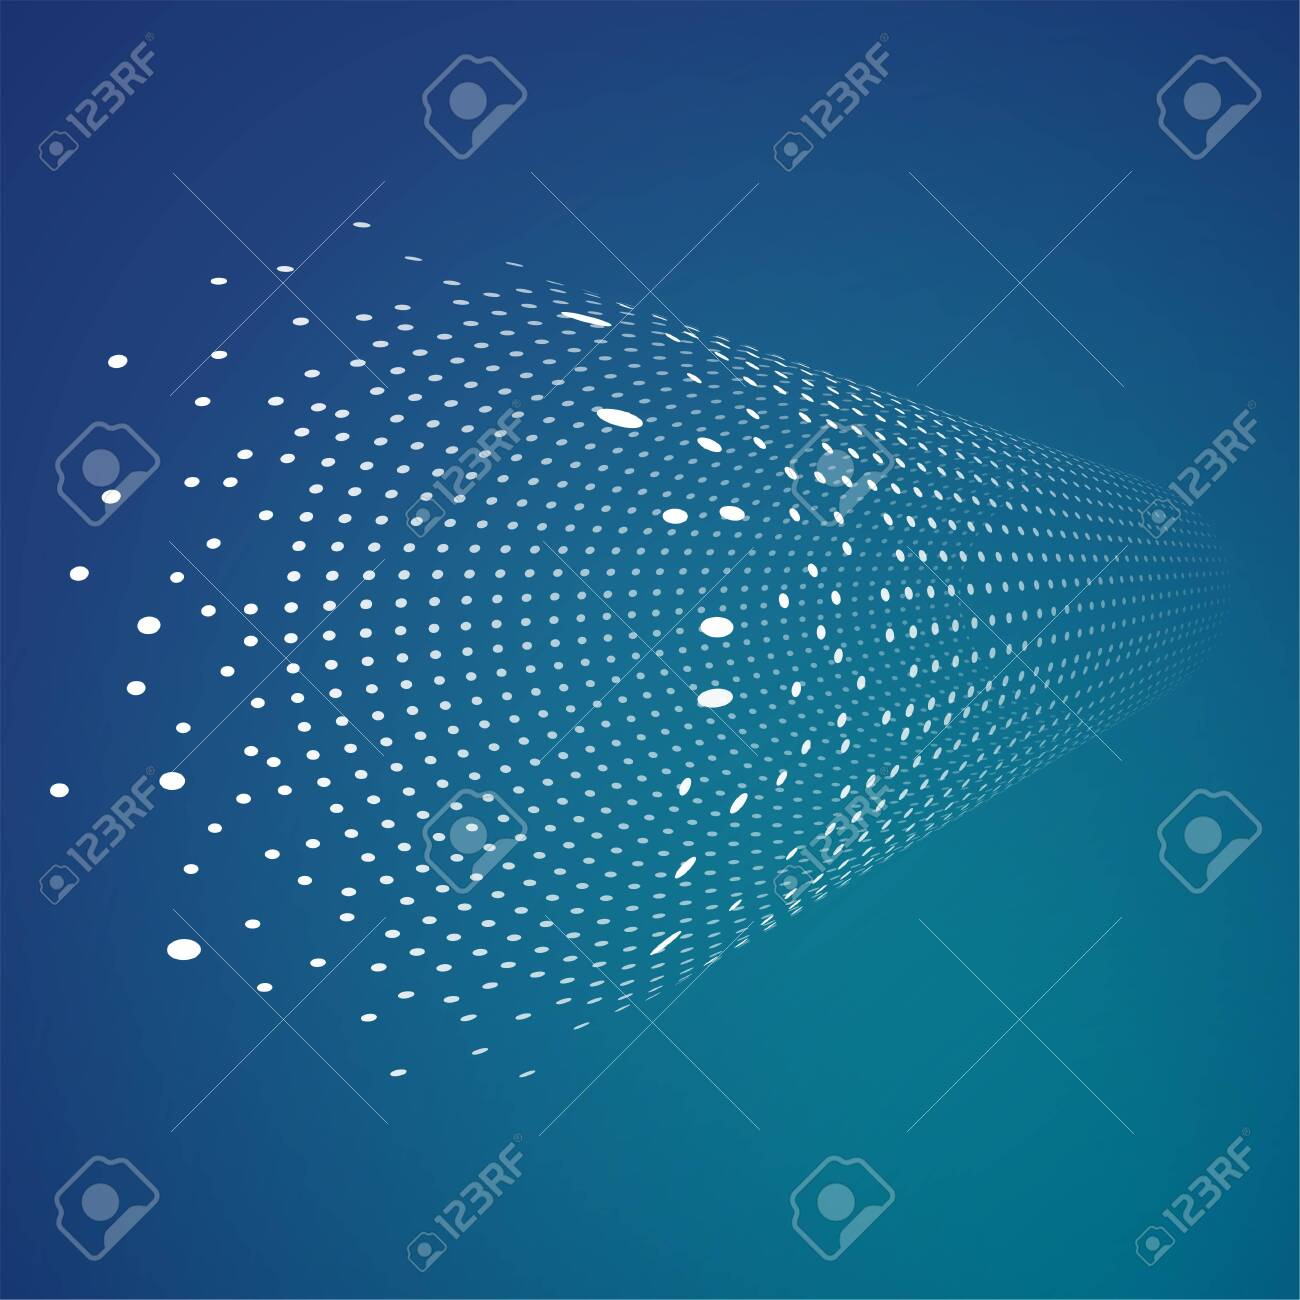 Dots forming cylinder. Abstract tunnel of small dots. Digital technology information concept. Big data. Data transfer. From chaos to order. - 153376026